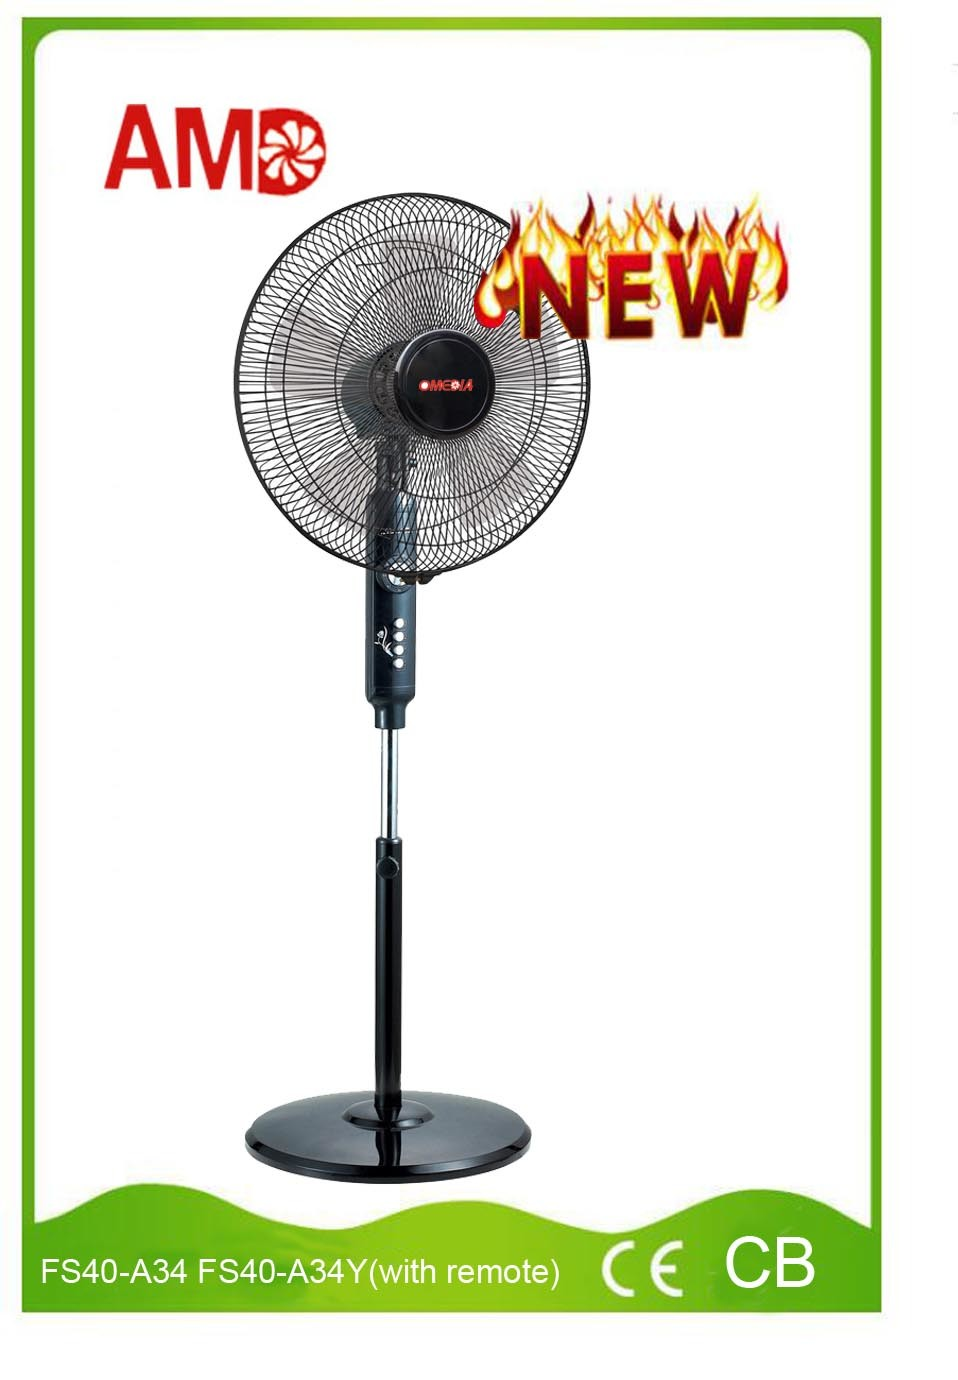 Hot-Selling Good Design Stand Fan Pedestal Fan (FS40-A34)